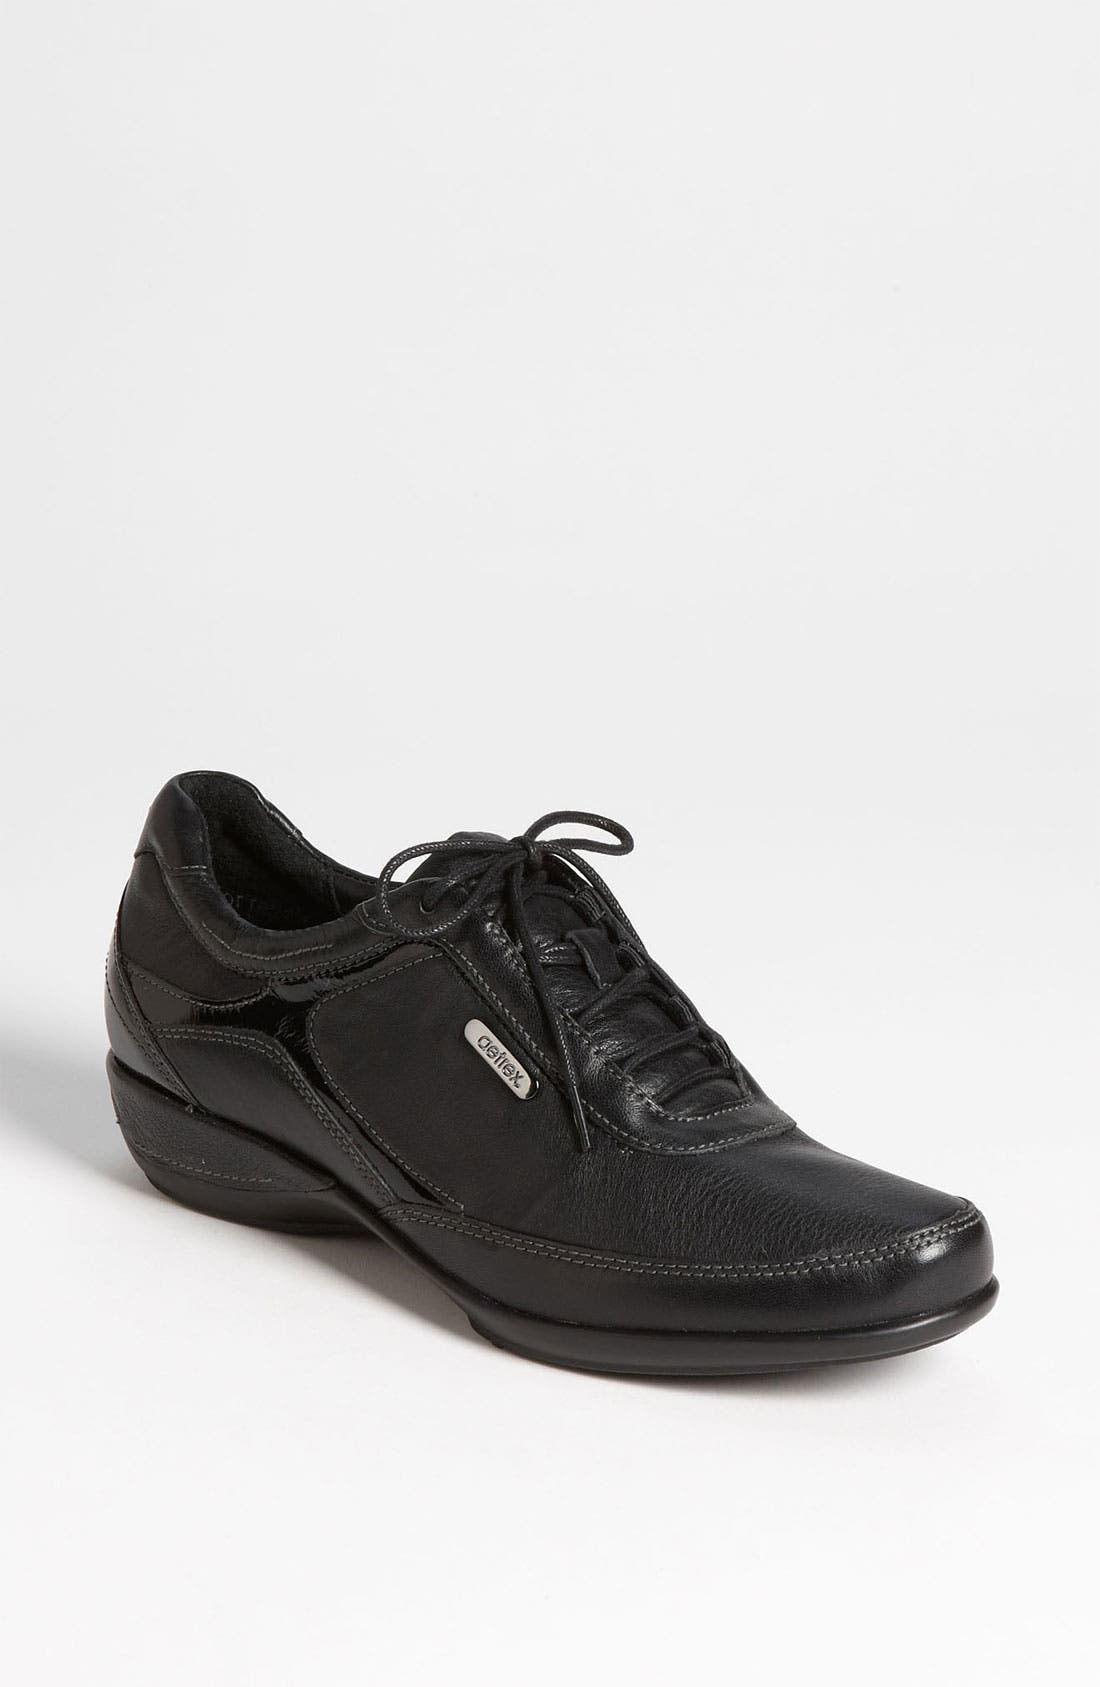 Main Image - Aetrex 'Holly' Oxford